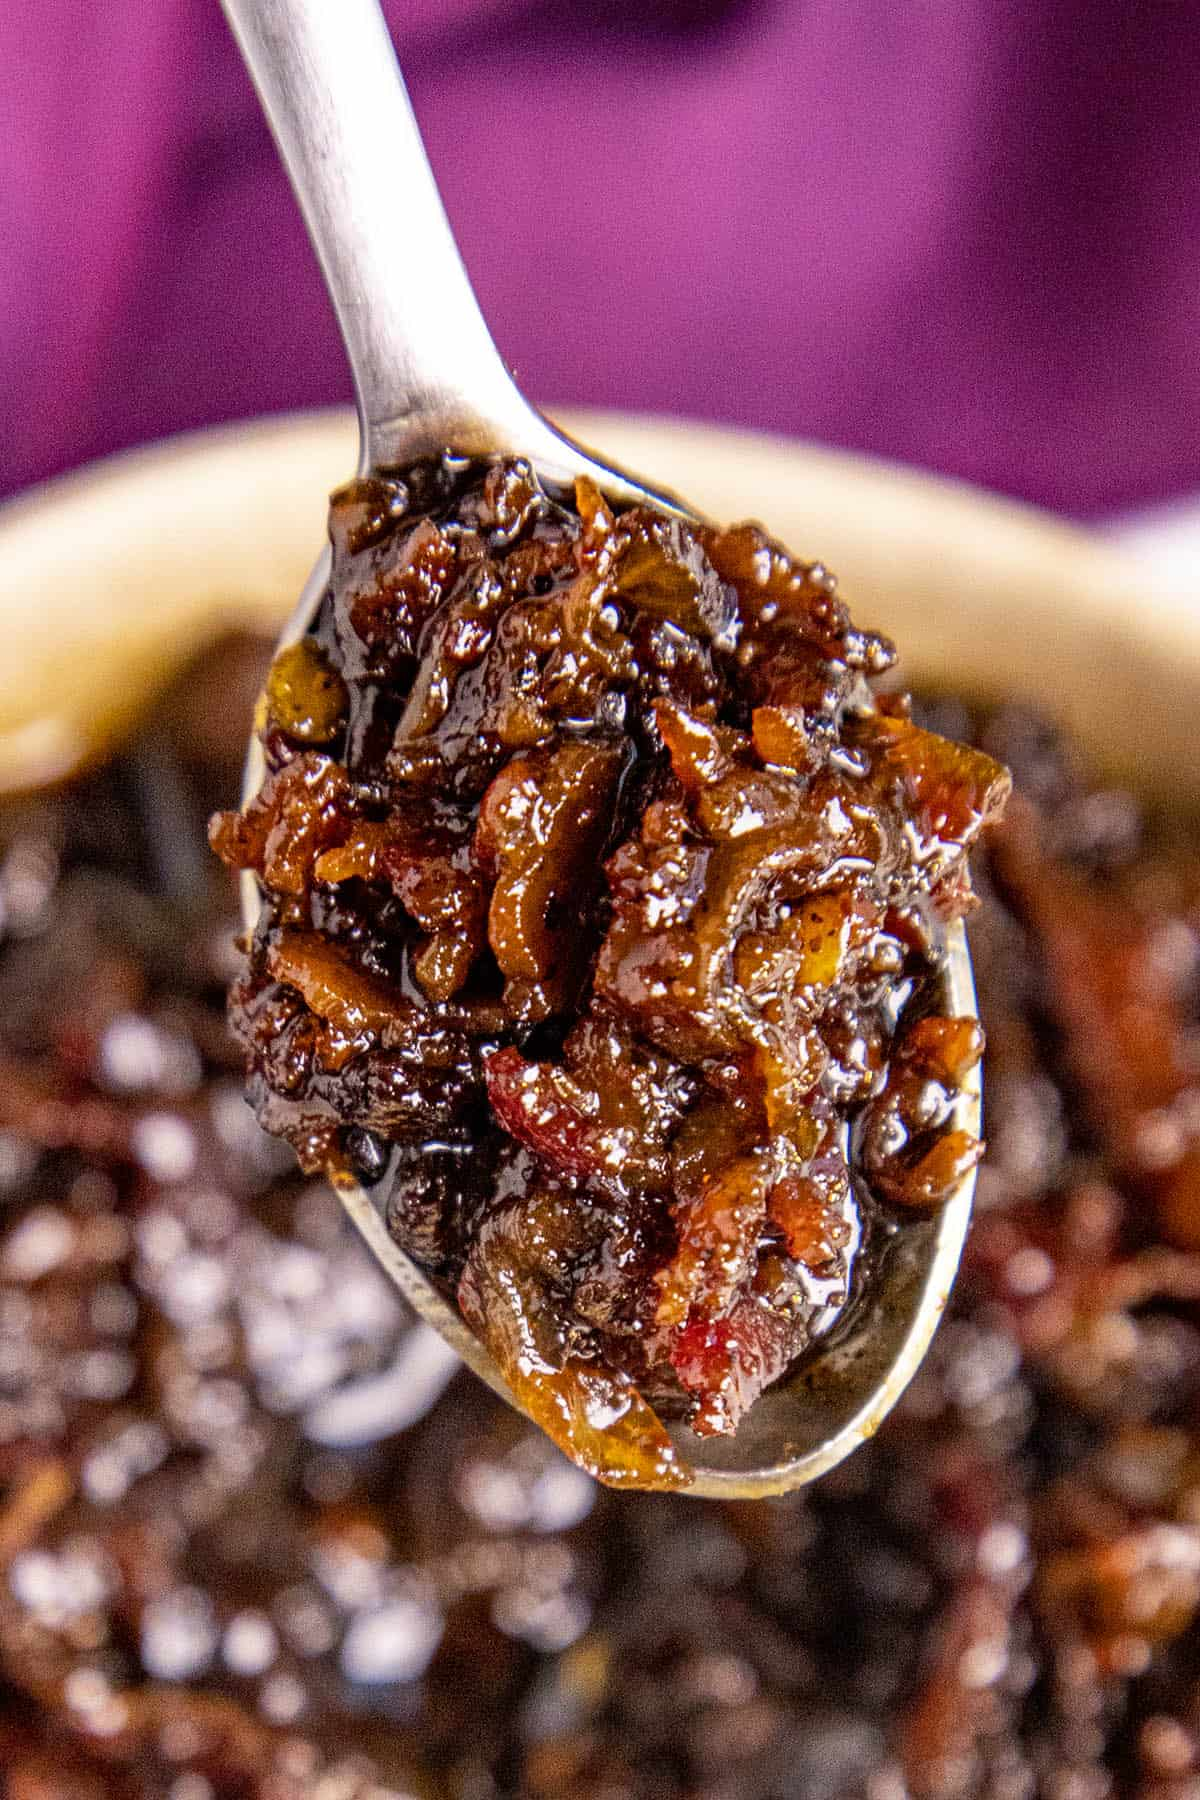 Bacon Jam on a spoon